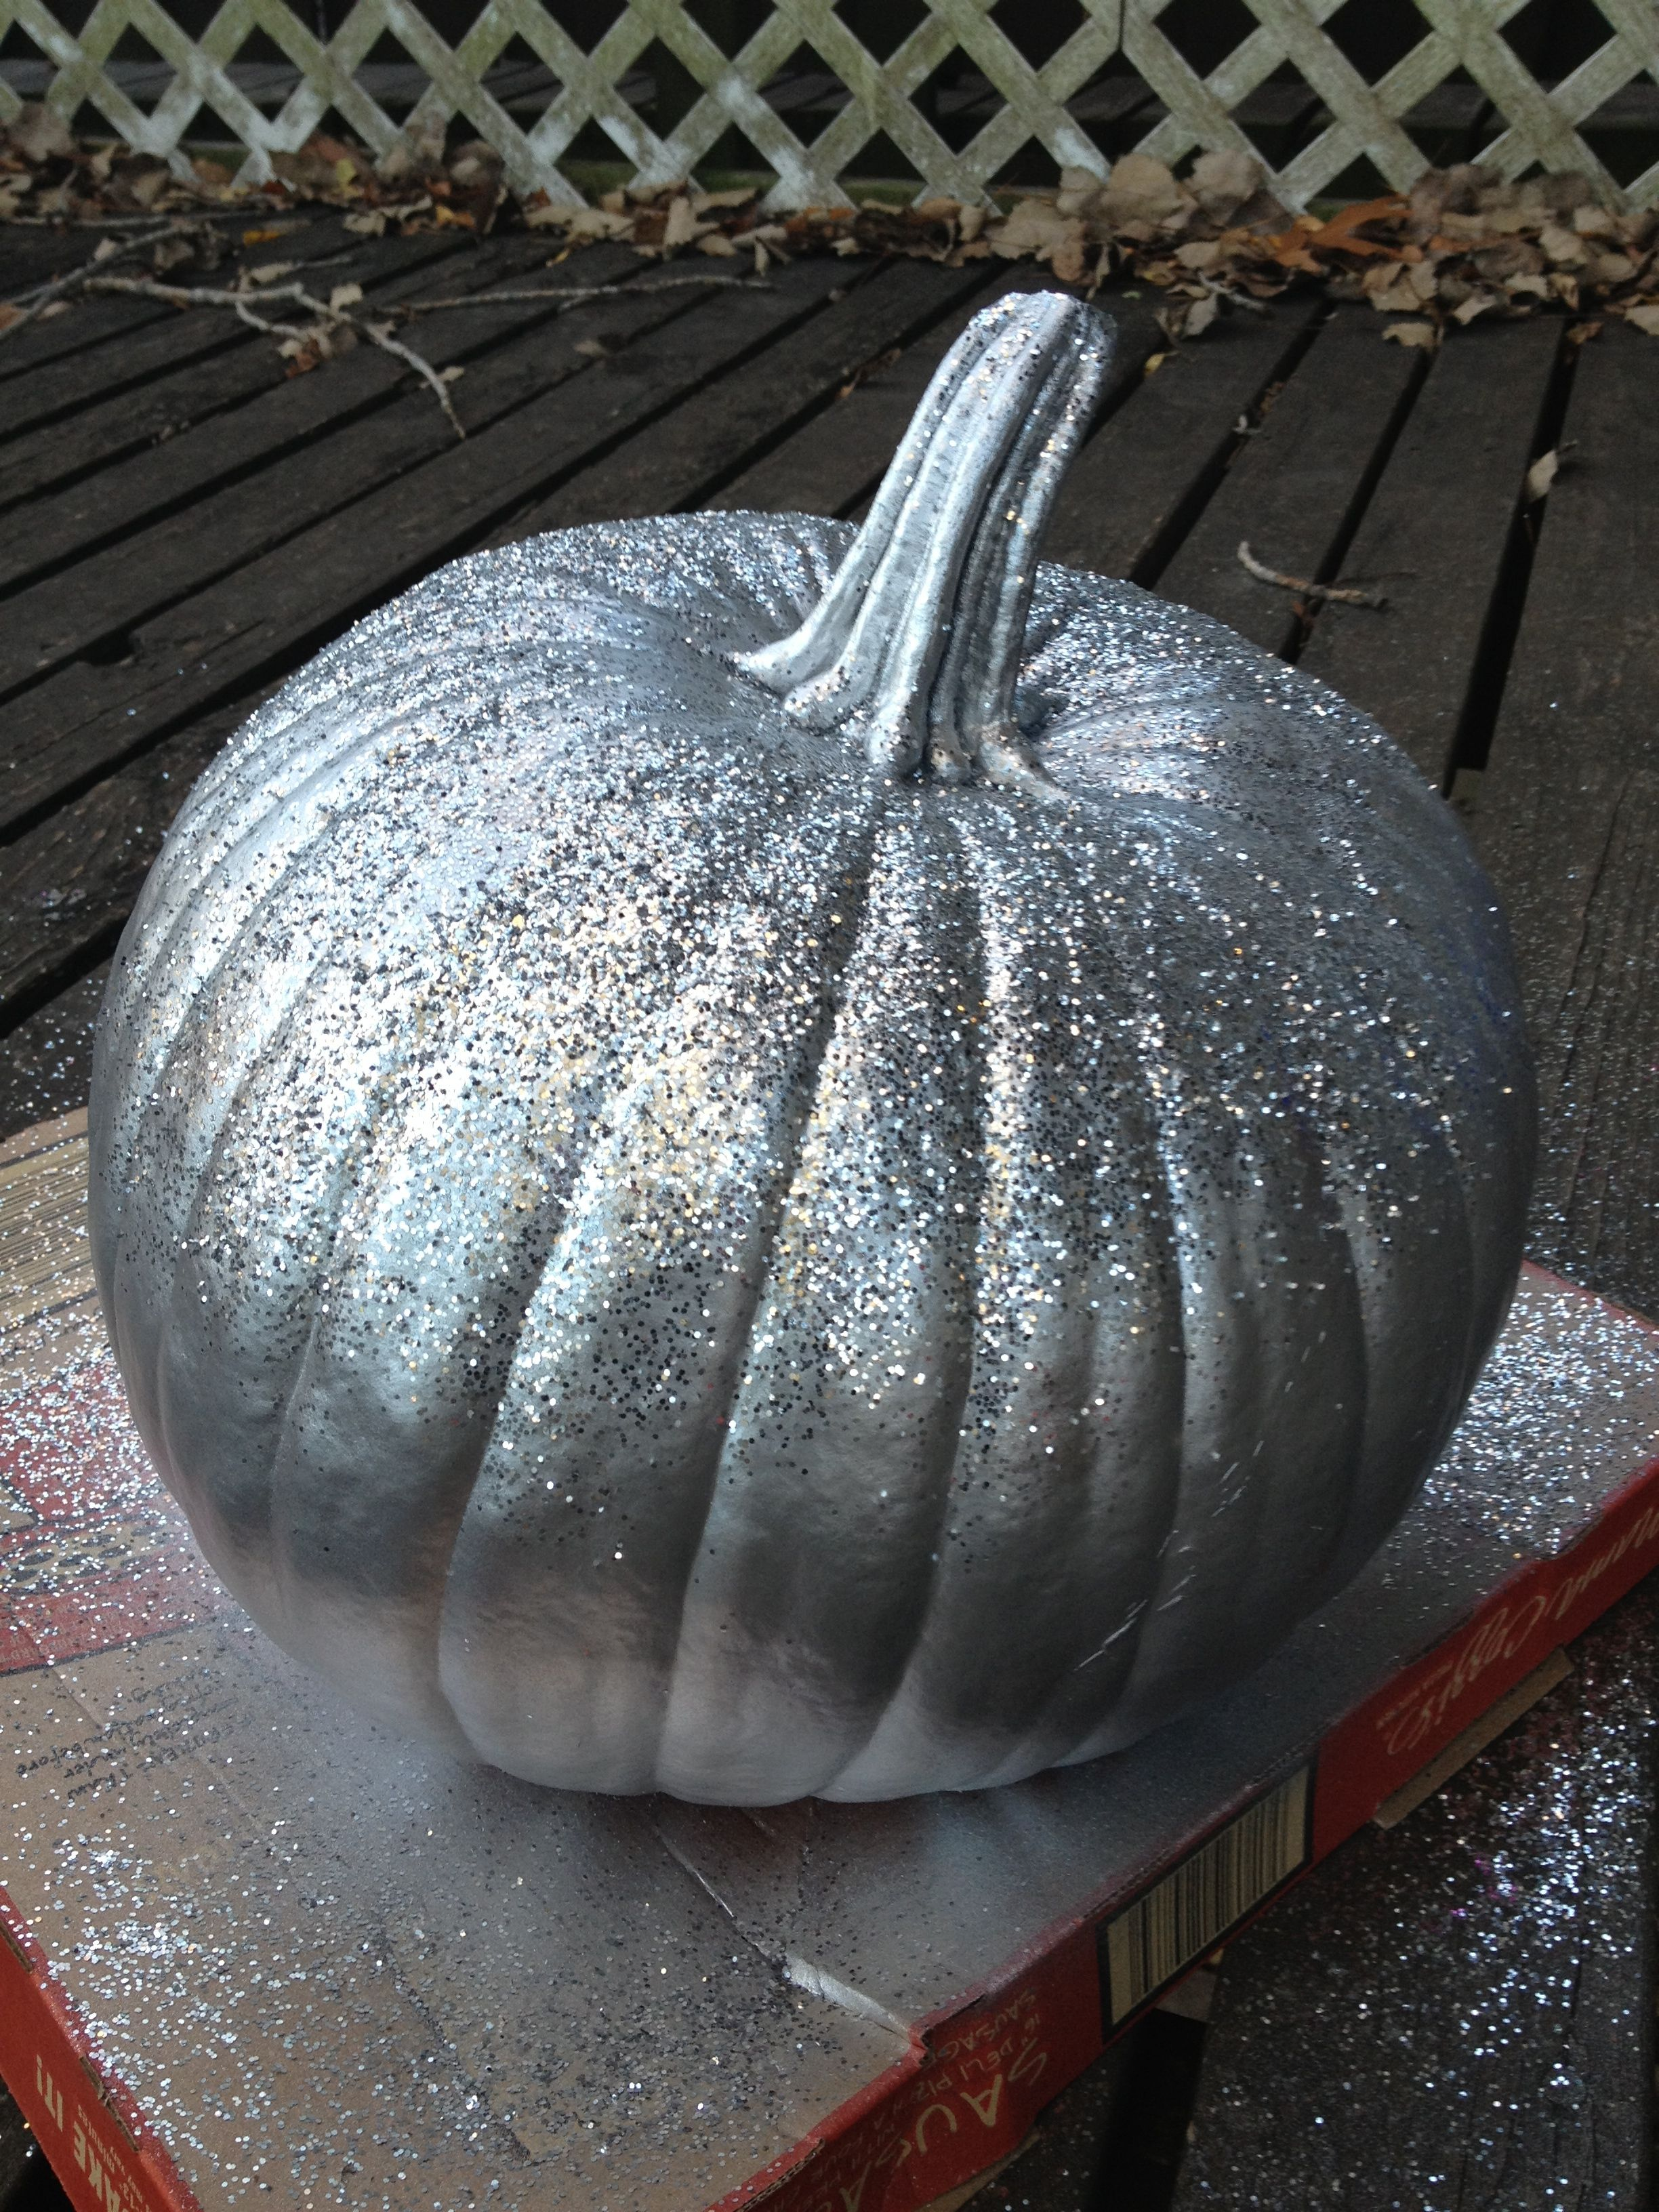 Silver Spray Painted Pumpkin Sprayed With Clear Adhesive And Dusted With Glitter Glitter Pumpkins Silver Spray Paint Painted Pumpkins